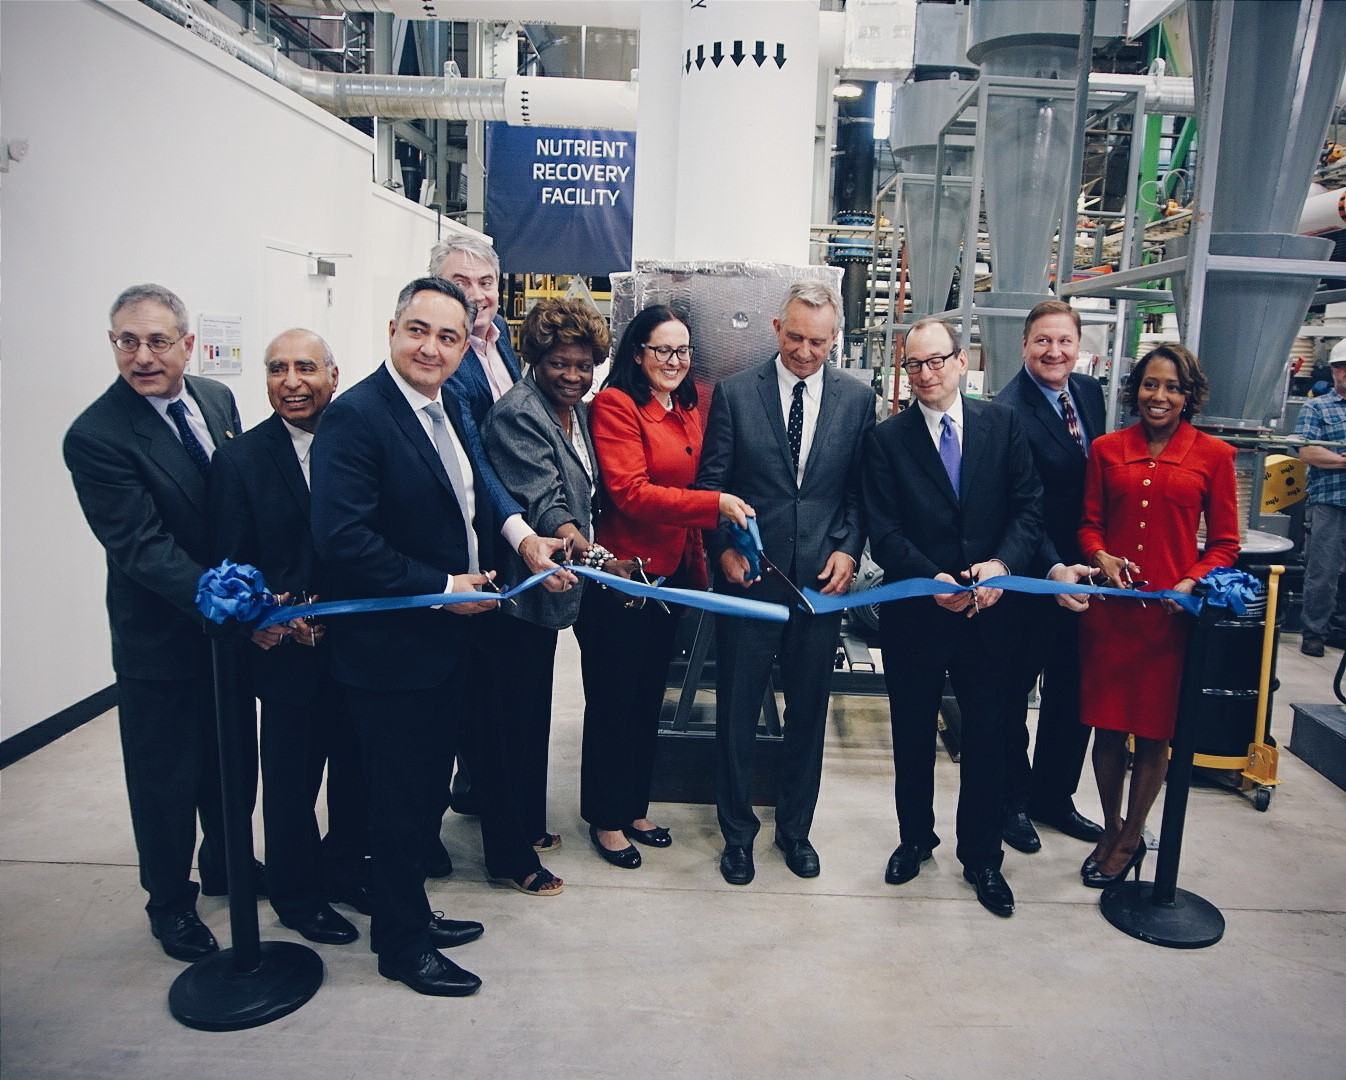 Metropolitan Water Reclamation District of Greater Chicago and Ostara Open World's Largest Nutrient Recovery Facility